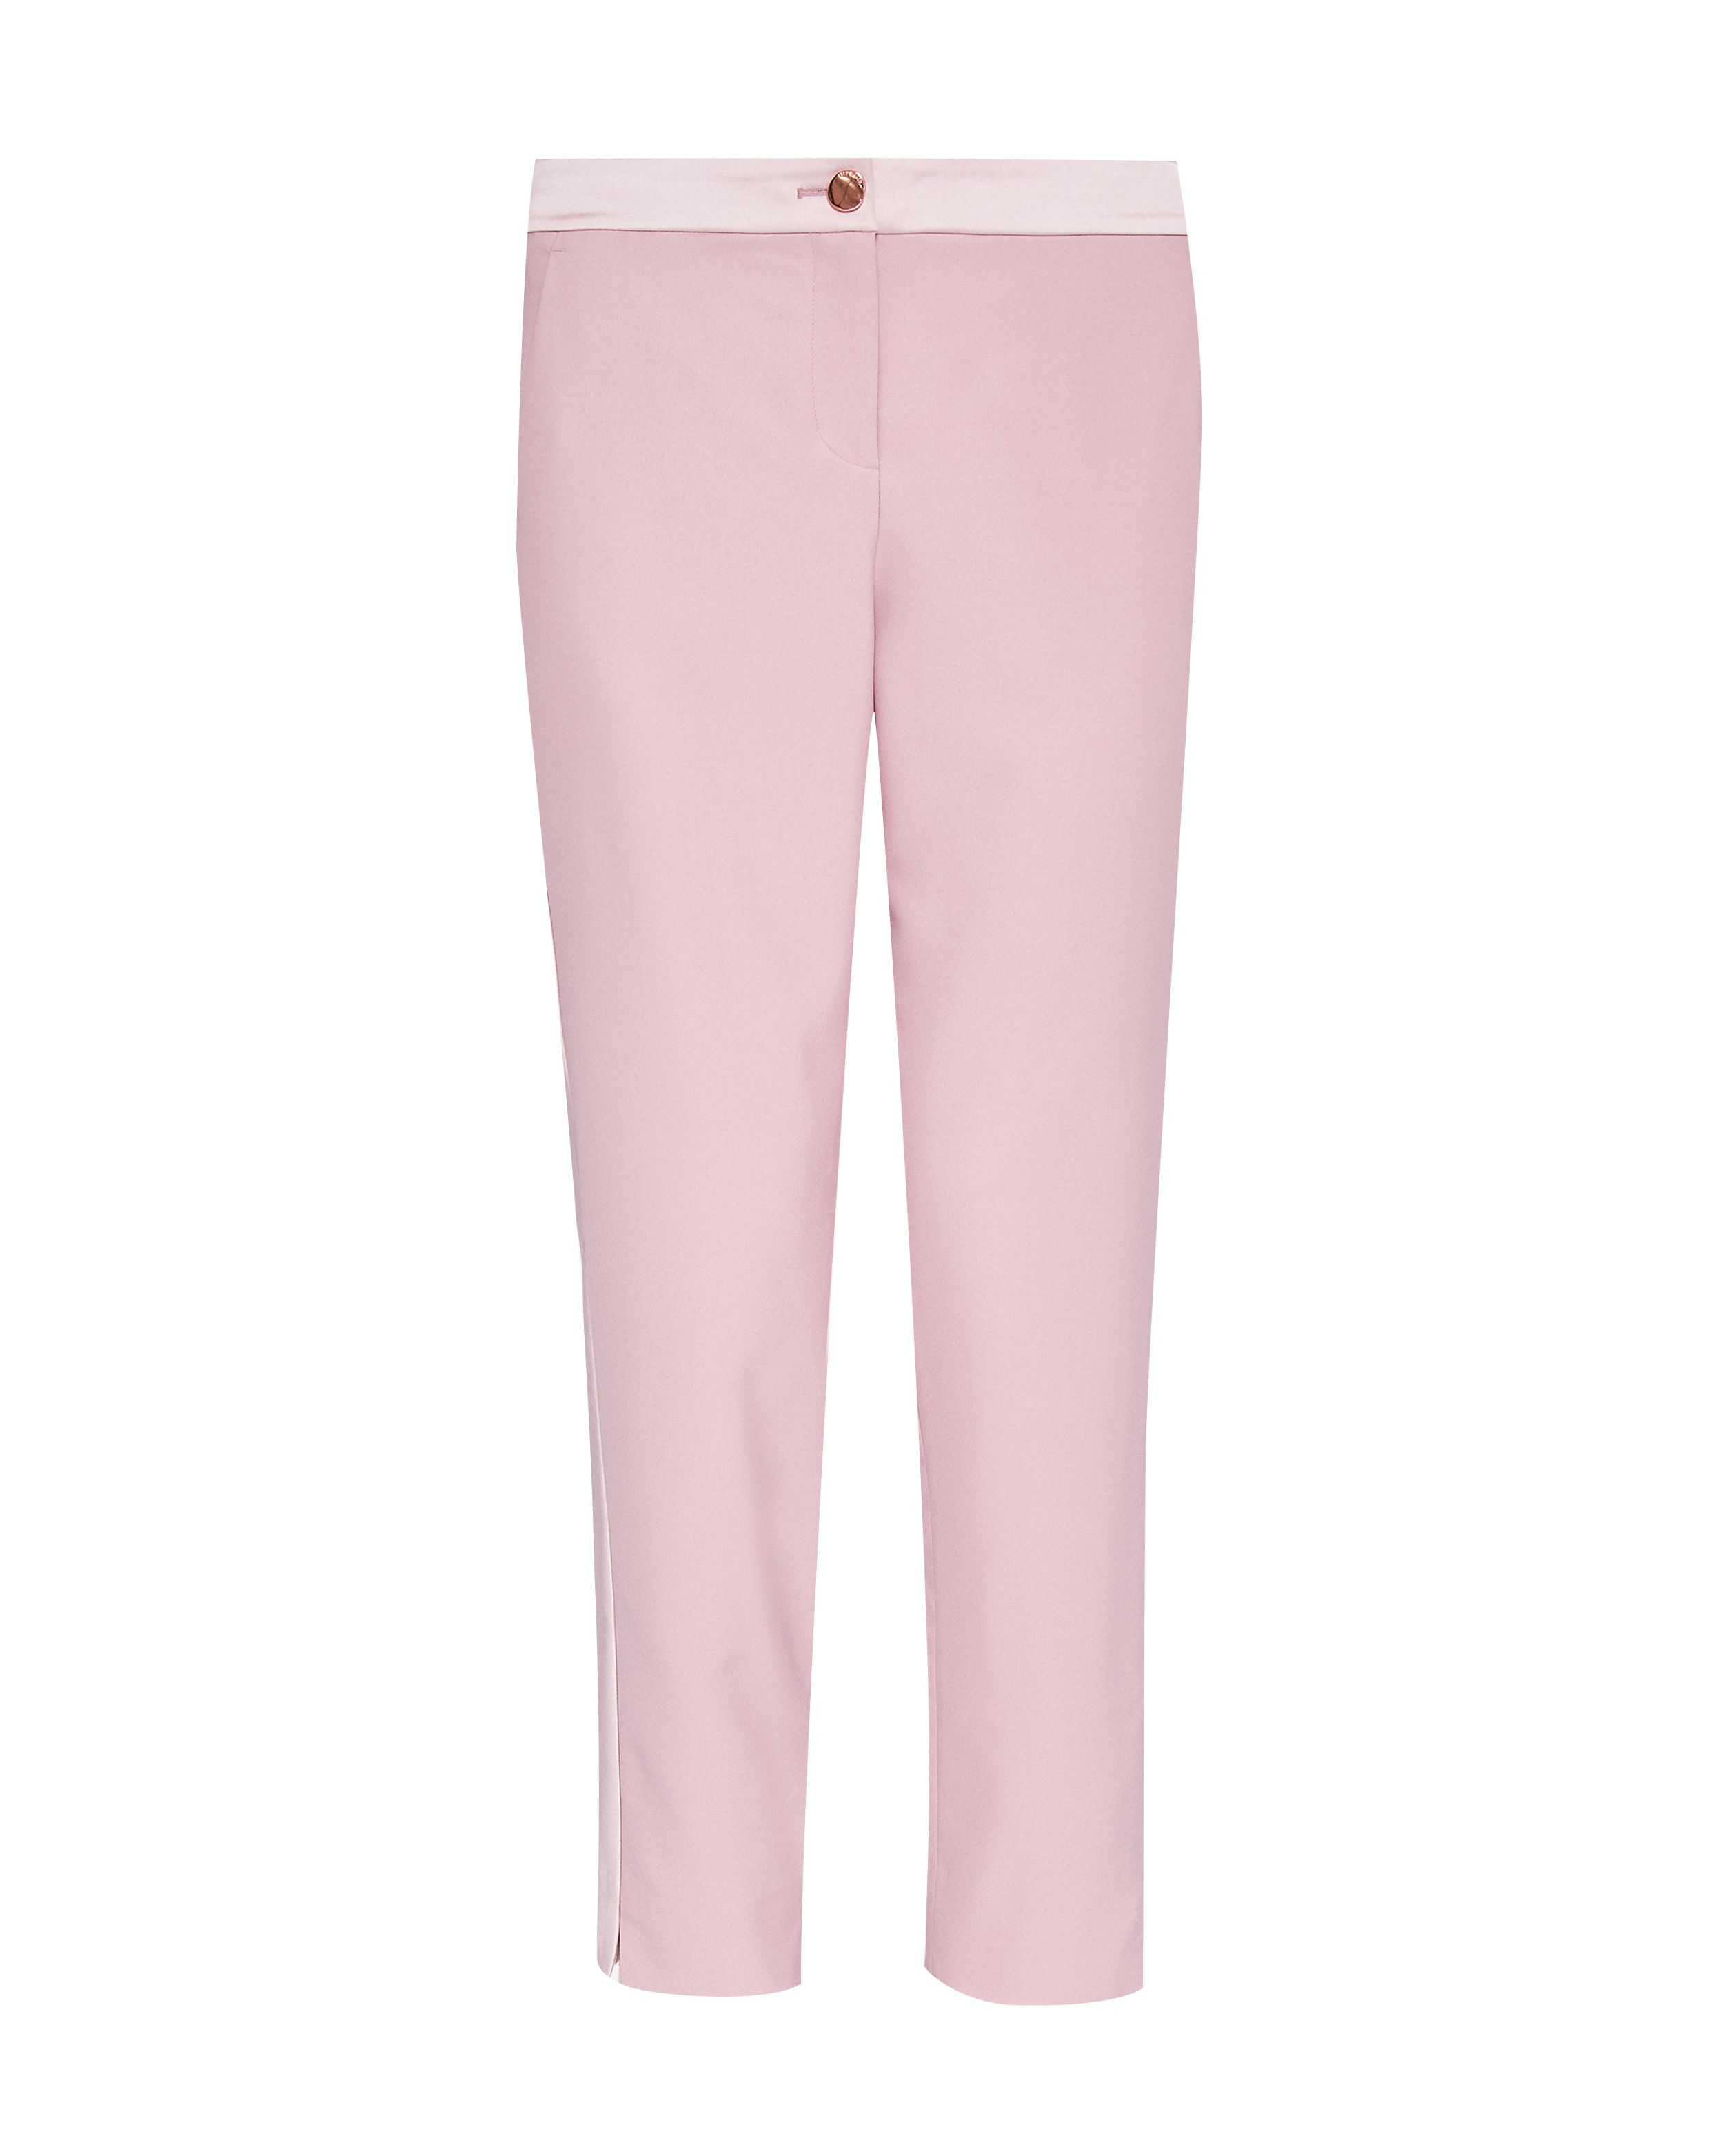 Ted Baker Fionna Contrast Panel Tapered Trouser, Pink